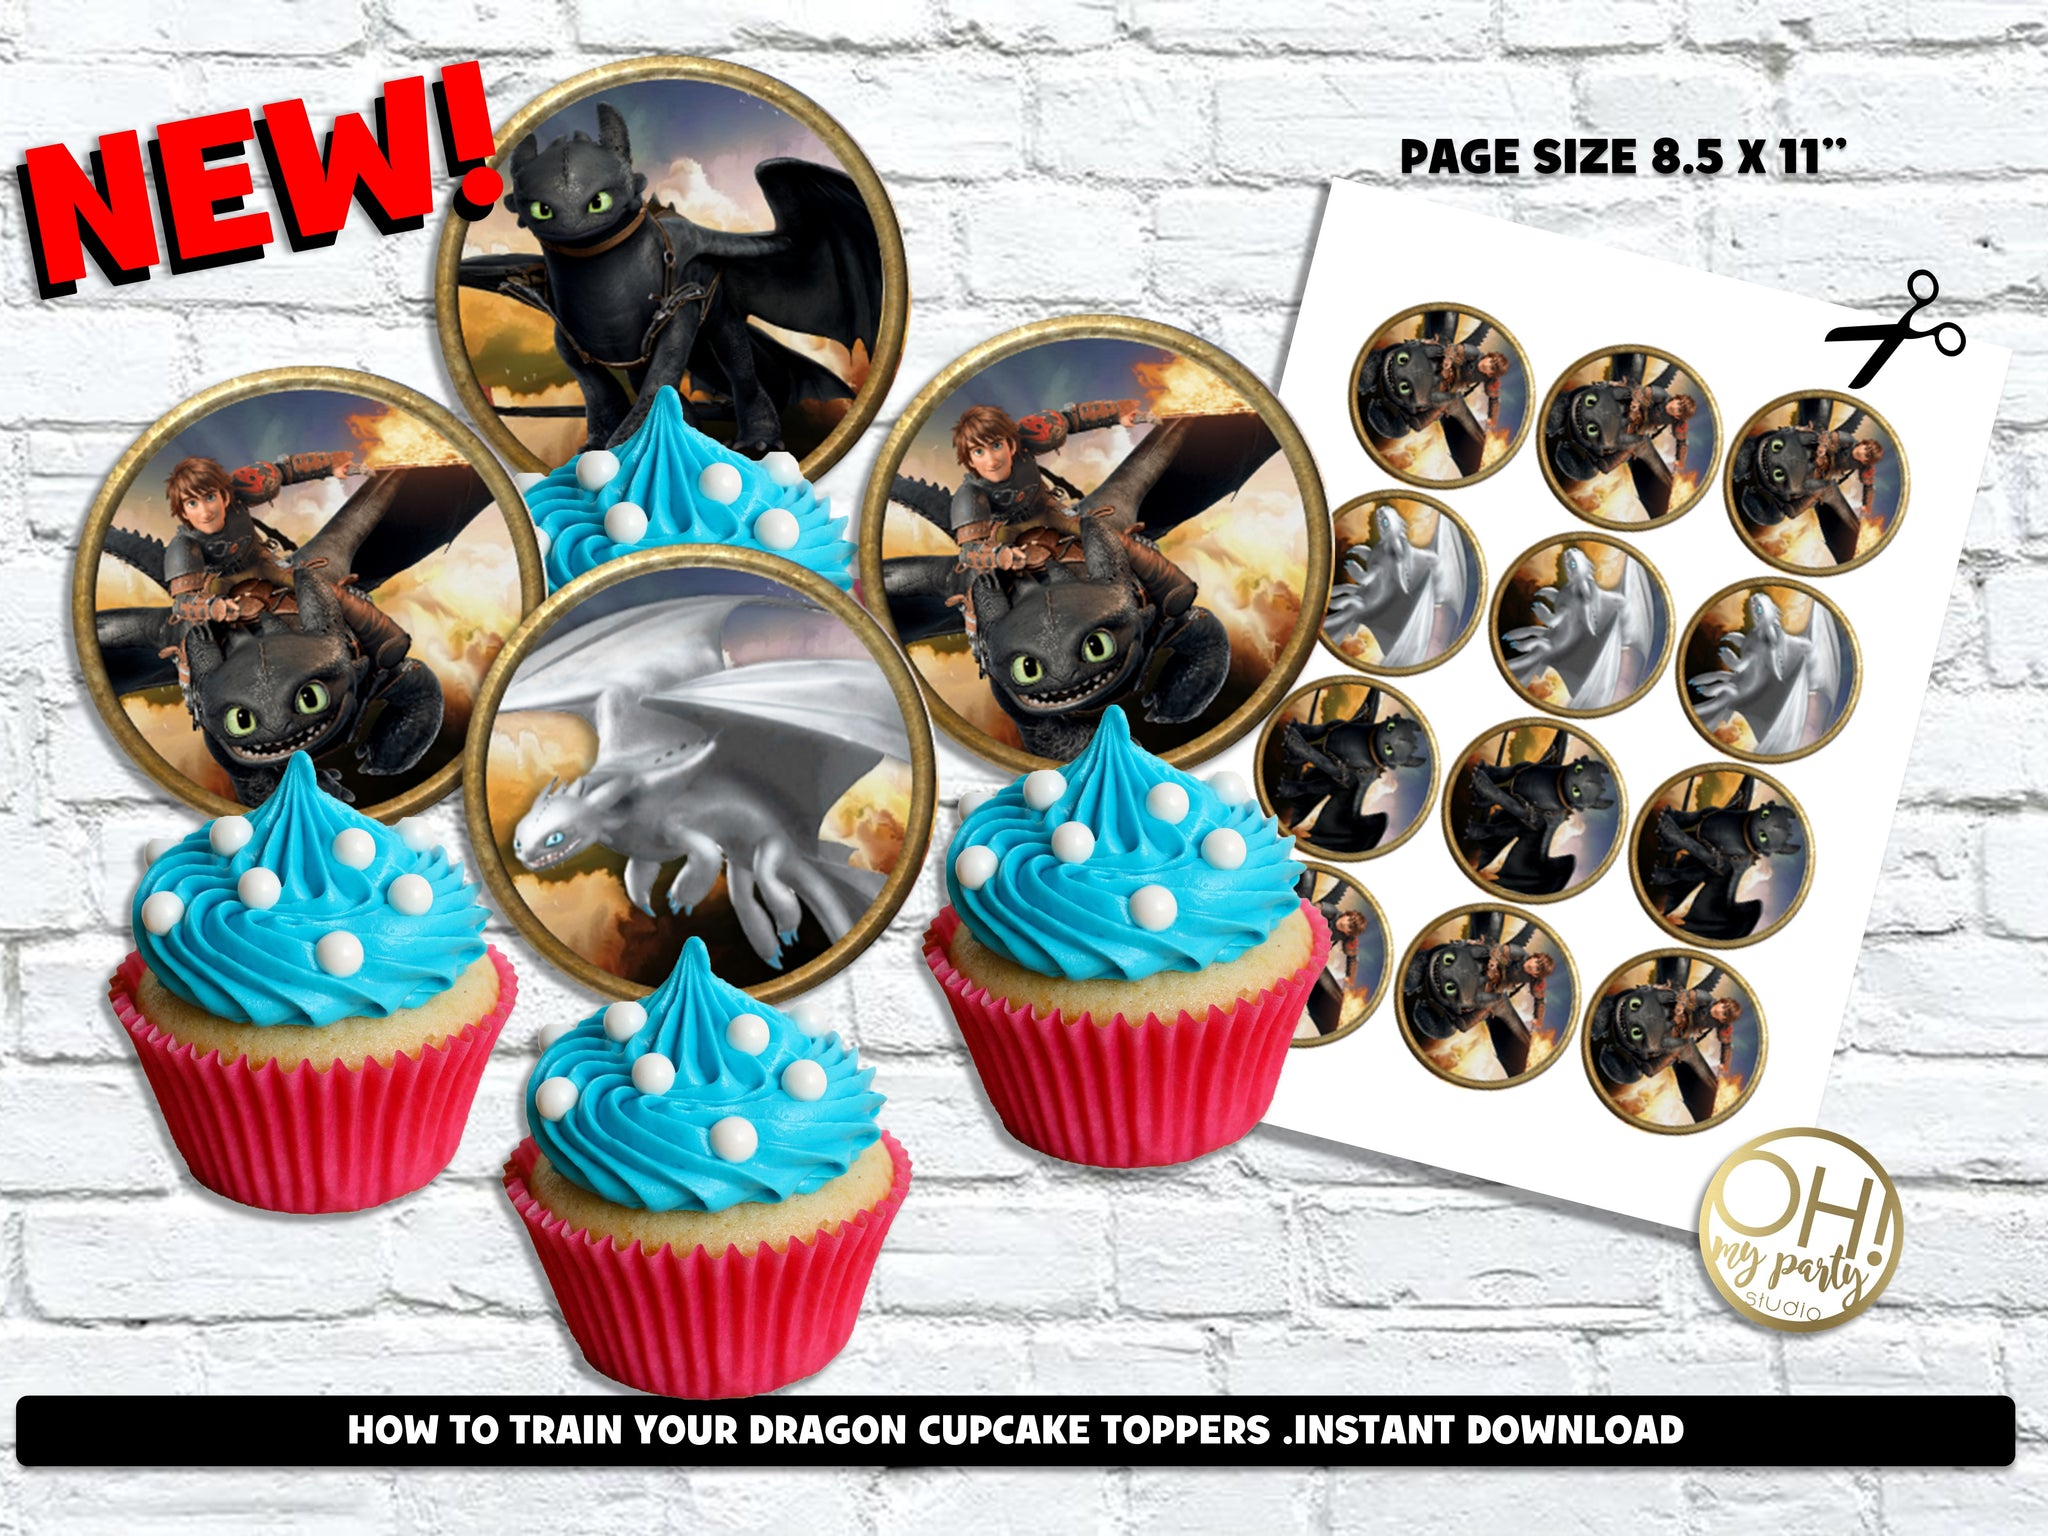 HOW TO TRAIN YOUR DRAGON PARTY SUPPLIES,HOW TO TRAIN YOUR DRAGON CUPCAKE TOPPERS, HOW TO TRAIN YOUR DRAGON PARTY, HOW TO TRAIN YOUR DRAGON CUPCAKE, HOW TO TRAIN YOUR DRAGON BIRTHDAY, HOW TO TRAIN YOUR DRAGON DECORATIONS